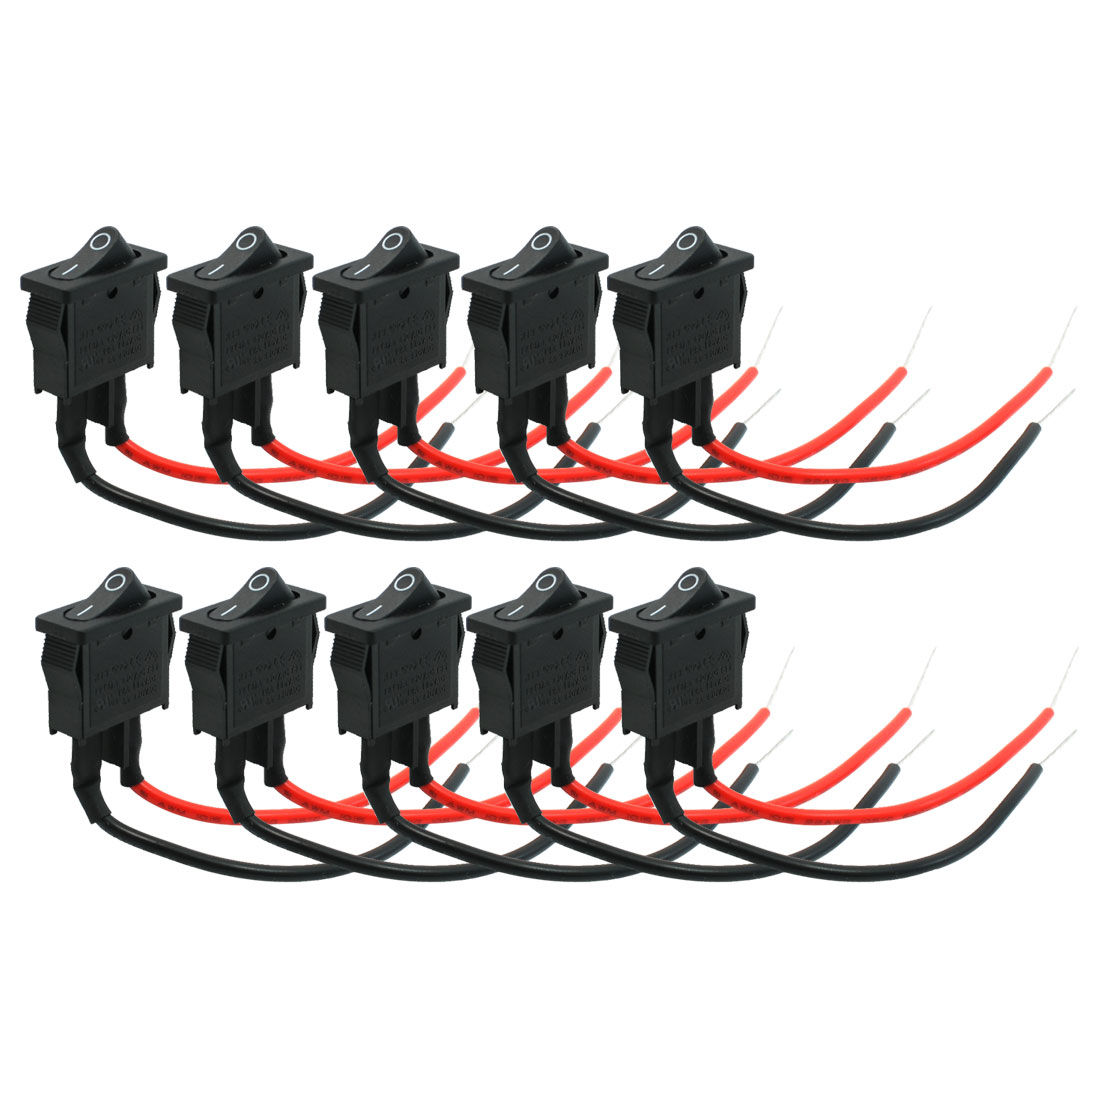 DC 12V 5A I/O ON-OFF SPST Snap in Rocker Switch 10 Pcs for Car Auto Vehicle